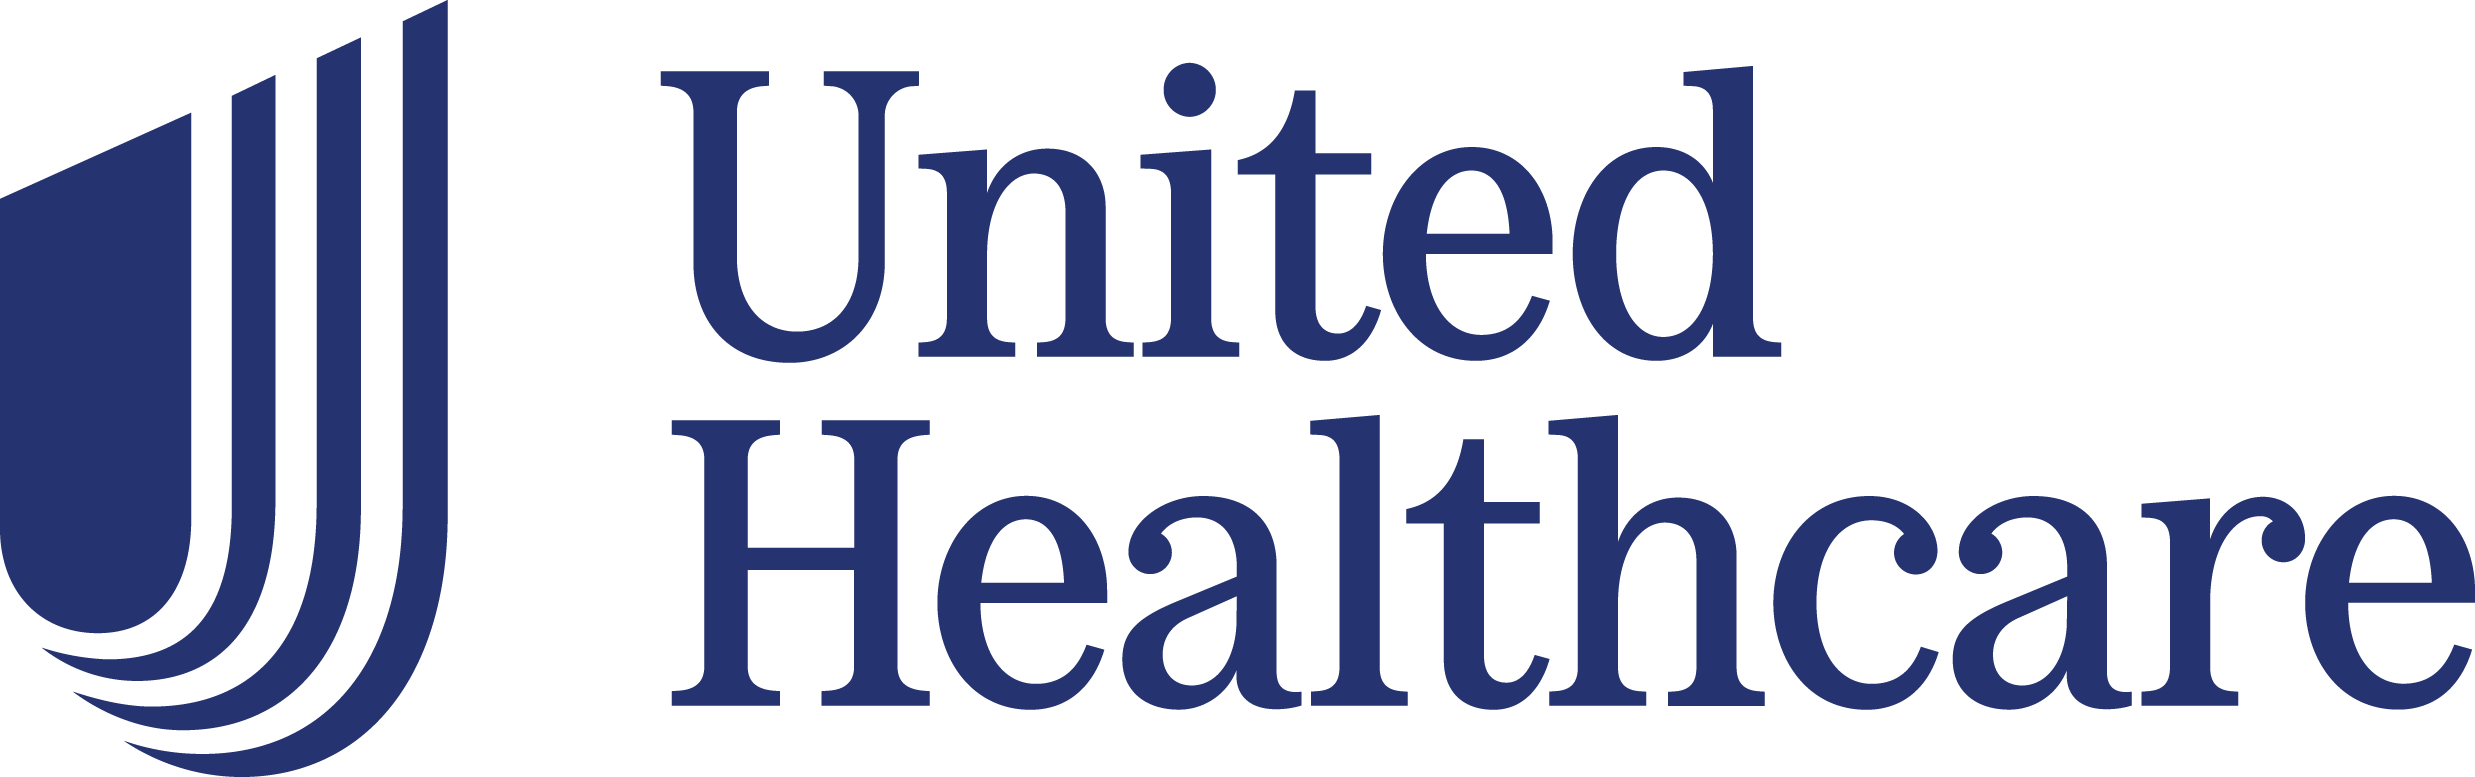 Mercy Grace United Healthcare